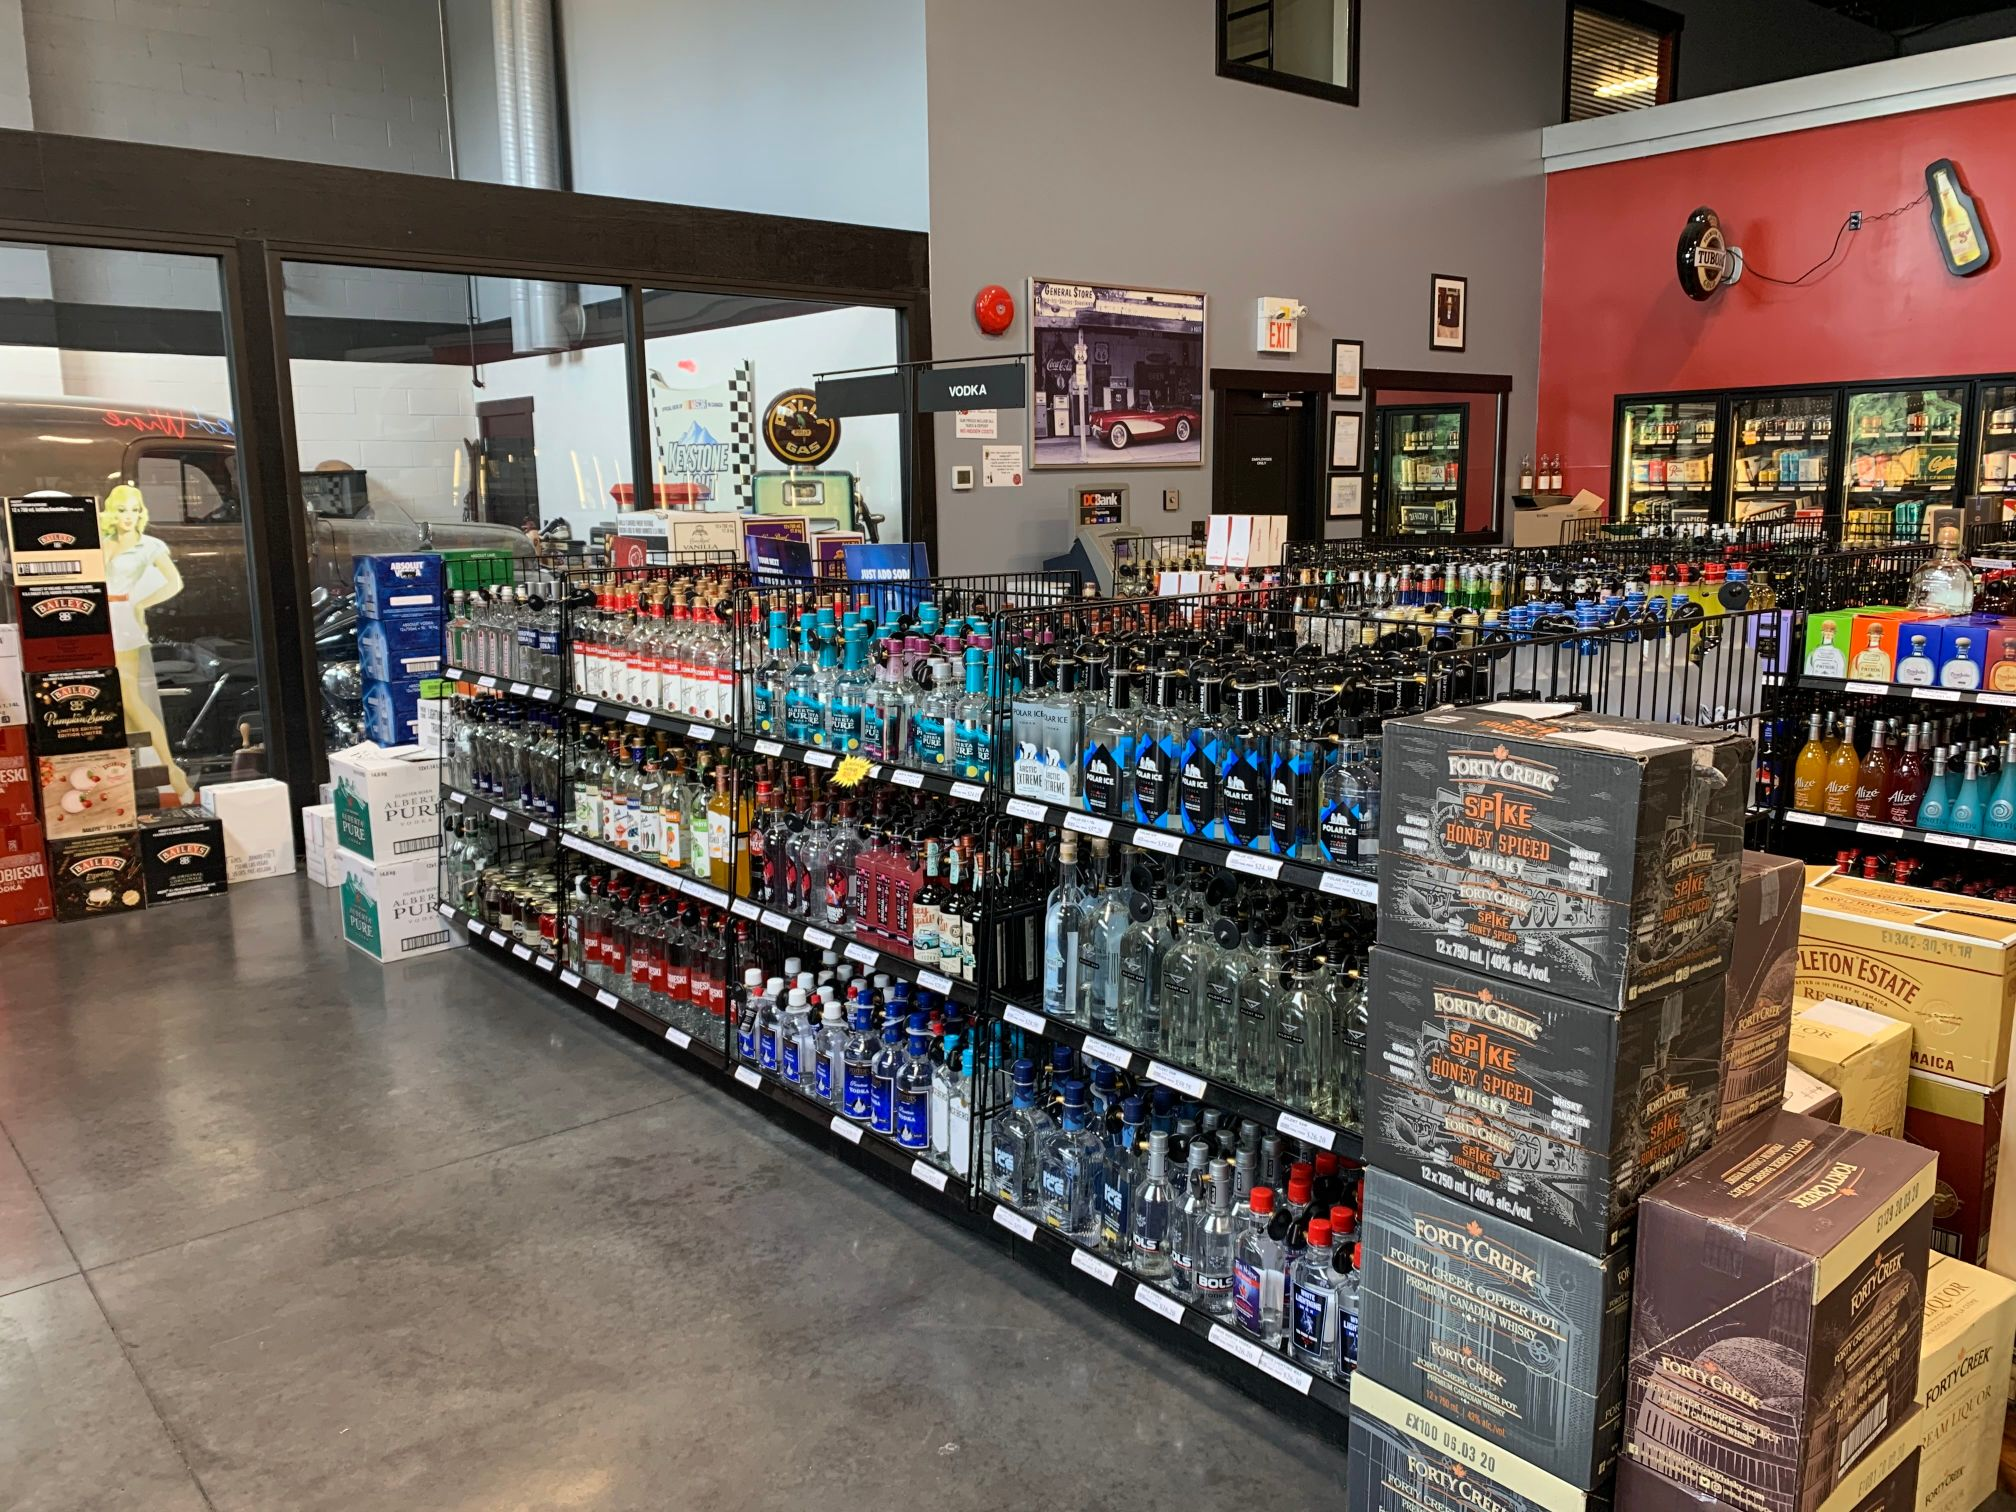 Liquor stock at the store